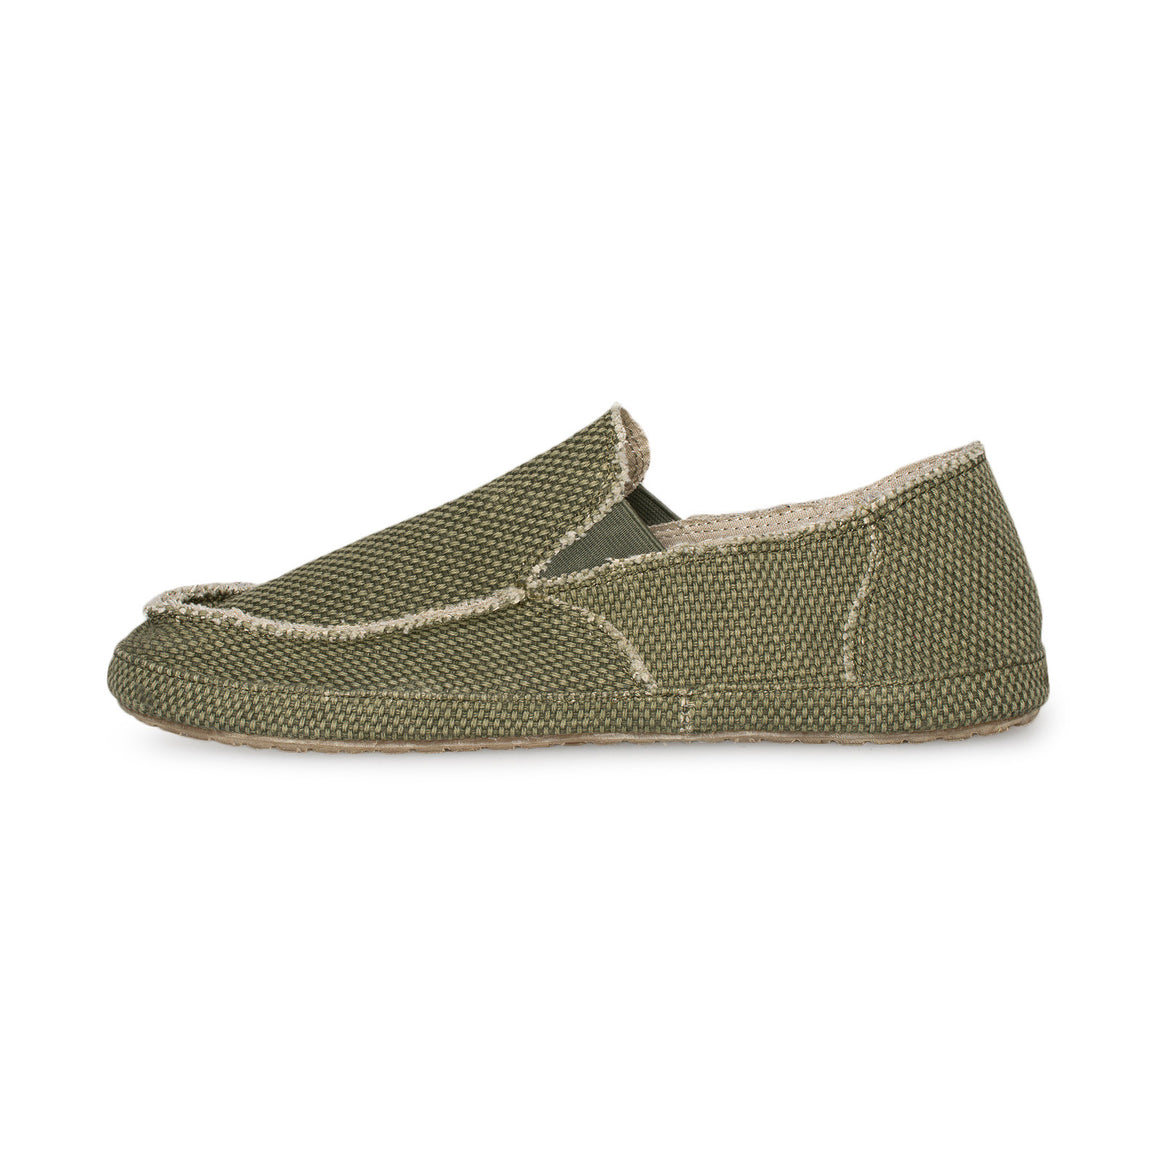 Sanuk Rounder Olive Green Shoes - Men's